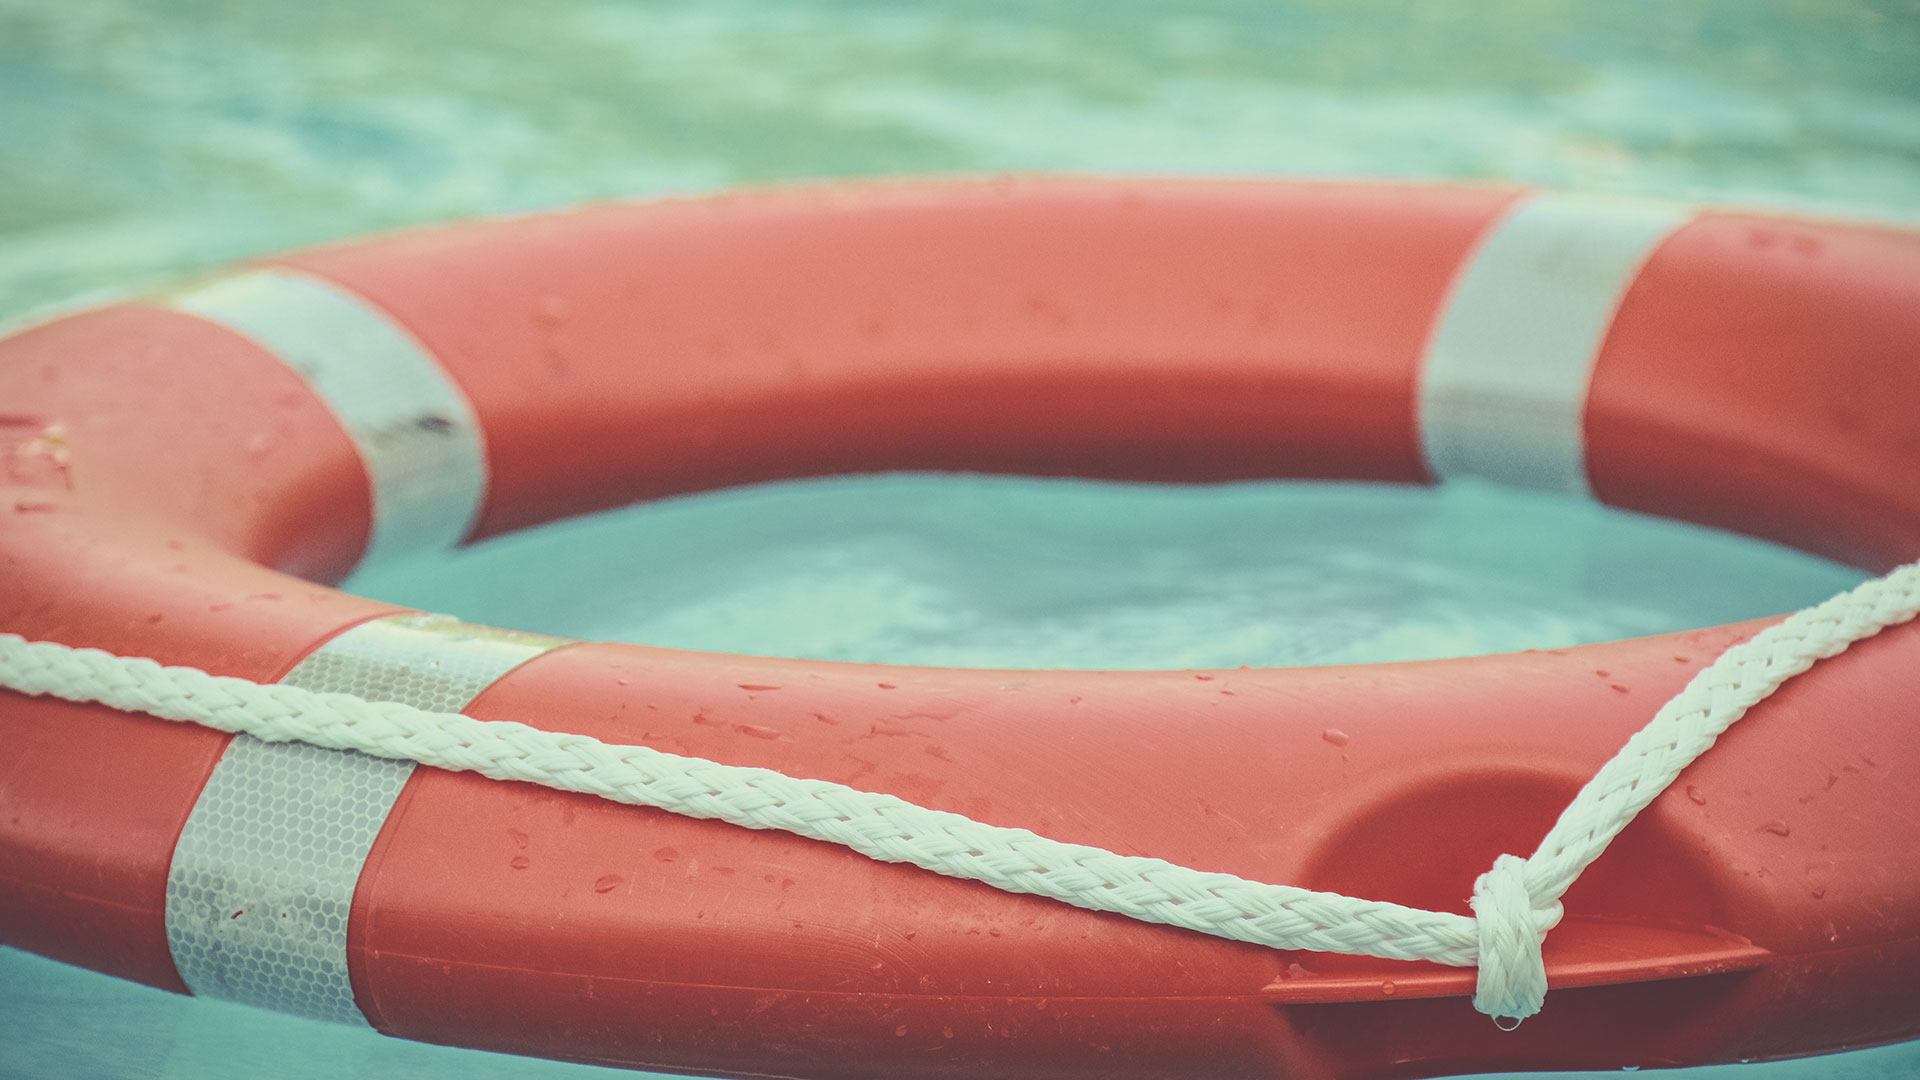 Image of a red life preserver floating in water.